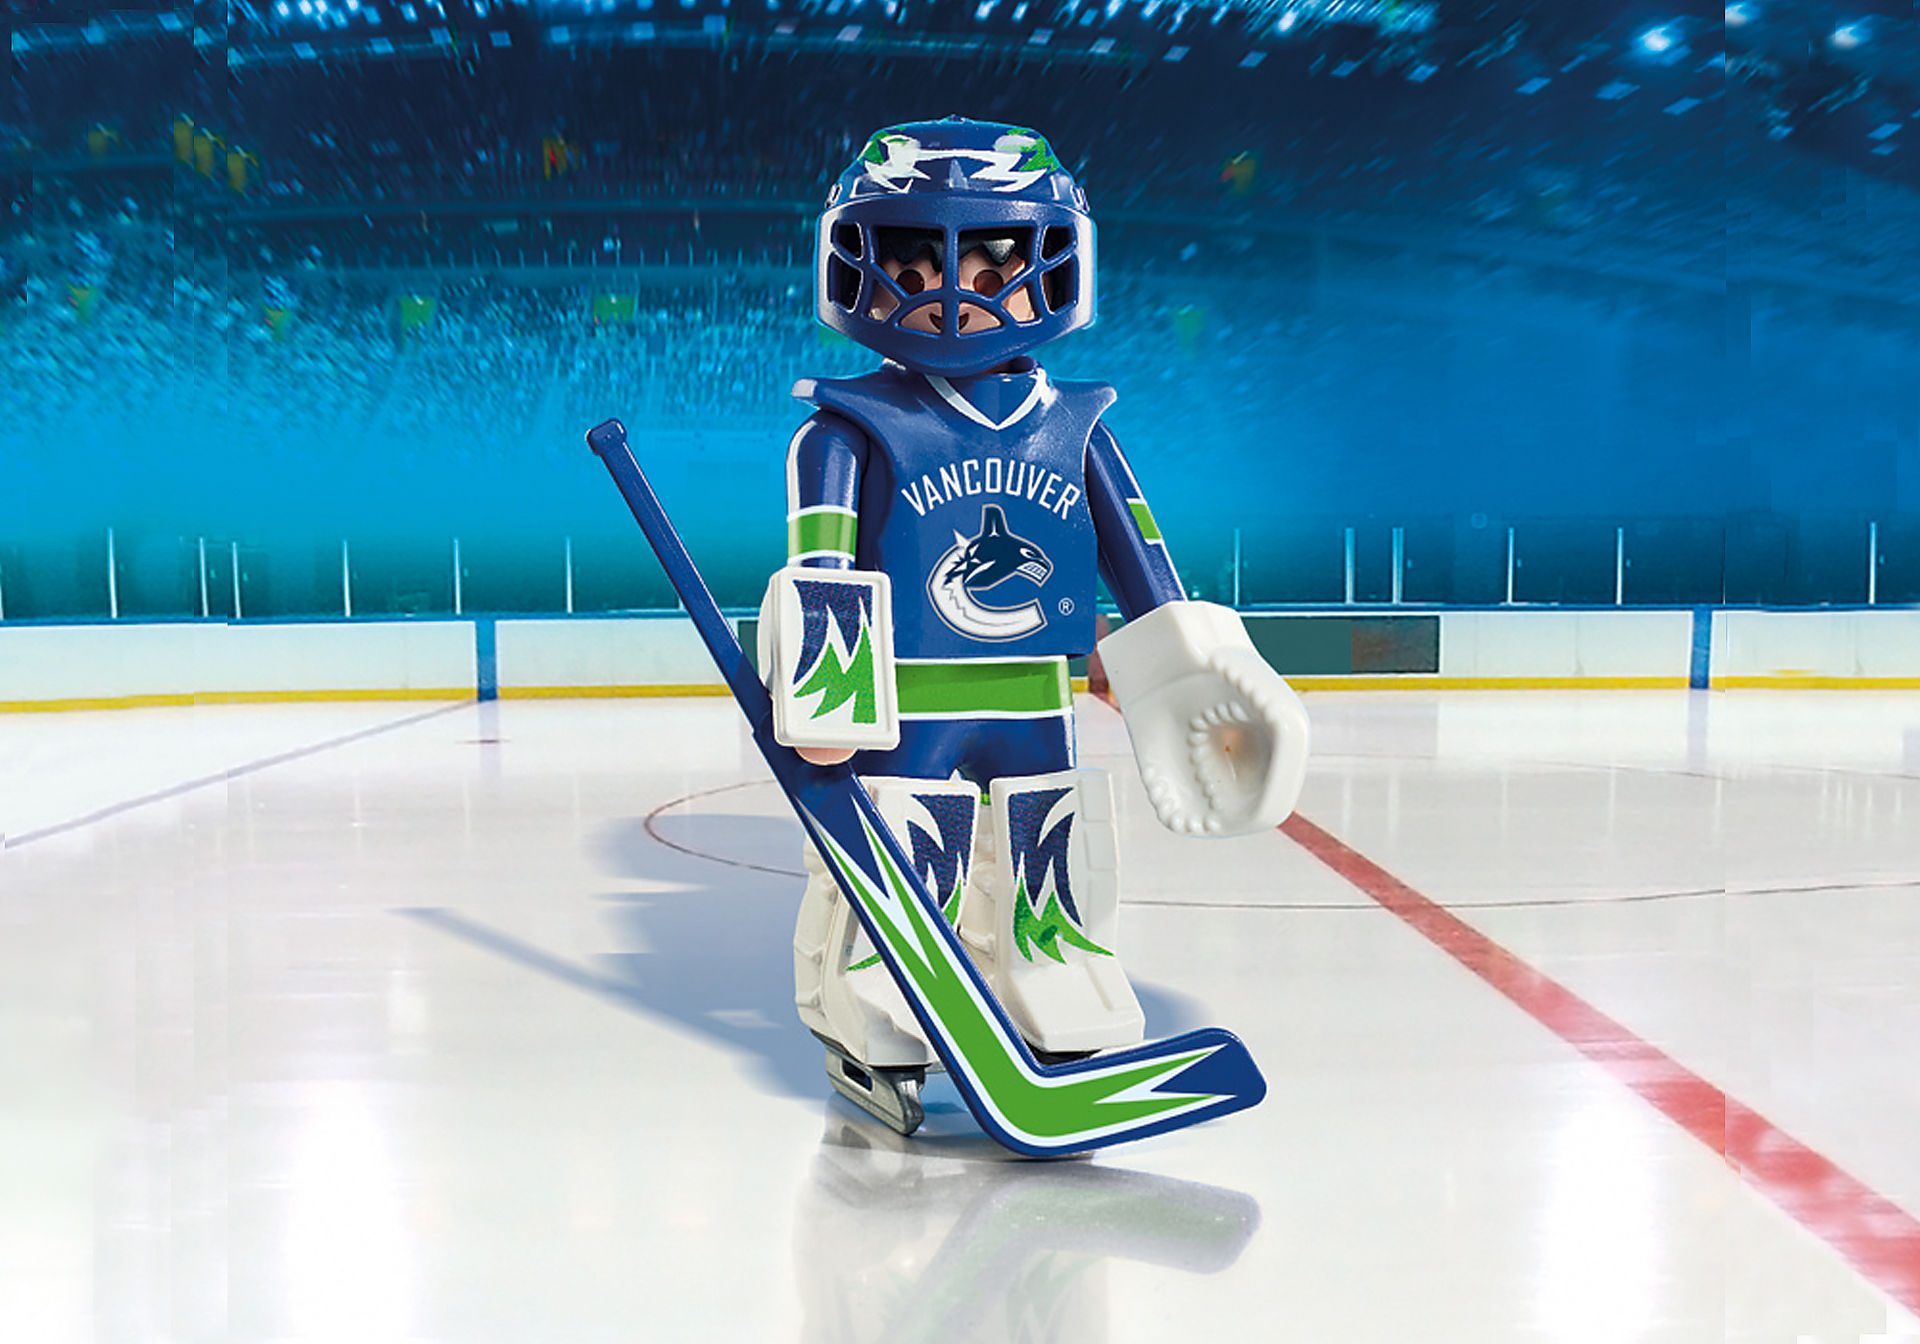 9026 NHL® Vancouver Canucks® Goalie zoom image1